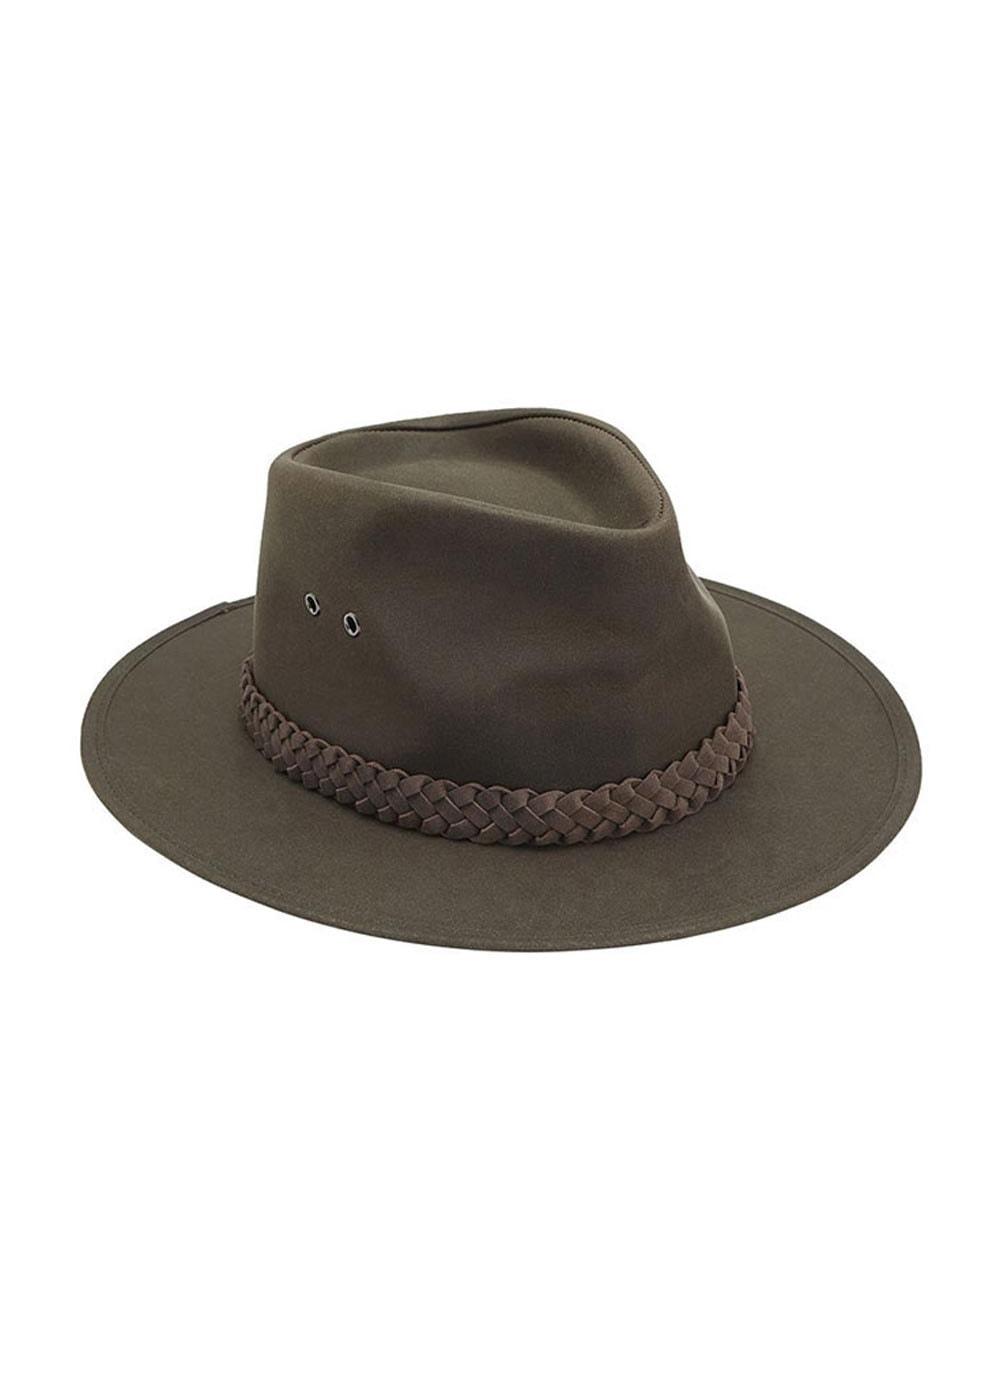 Barbour Wax Bushman Hat Mens From A Hume Uk